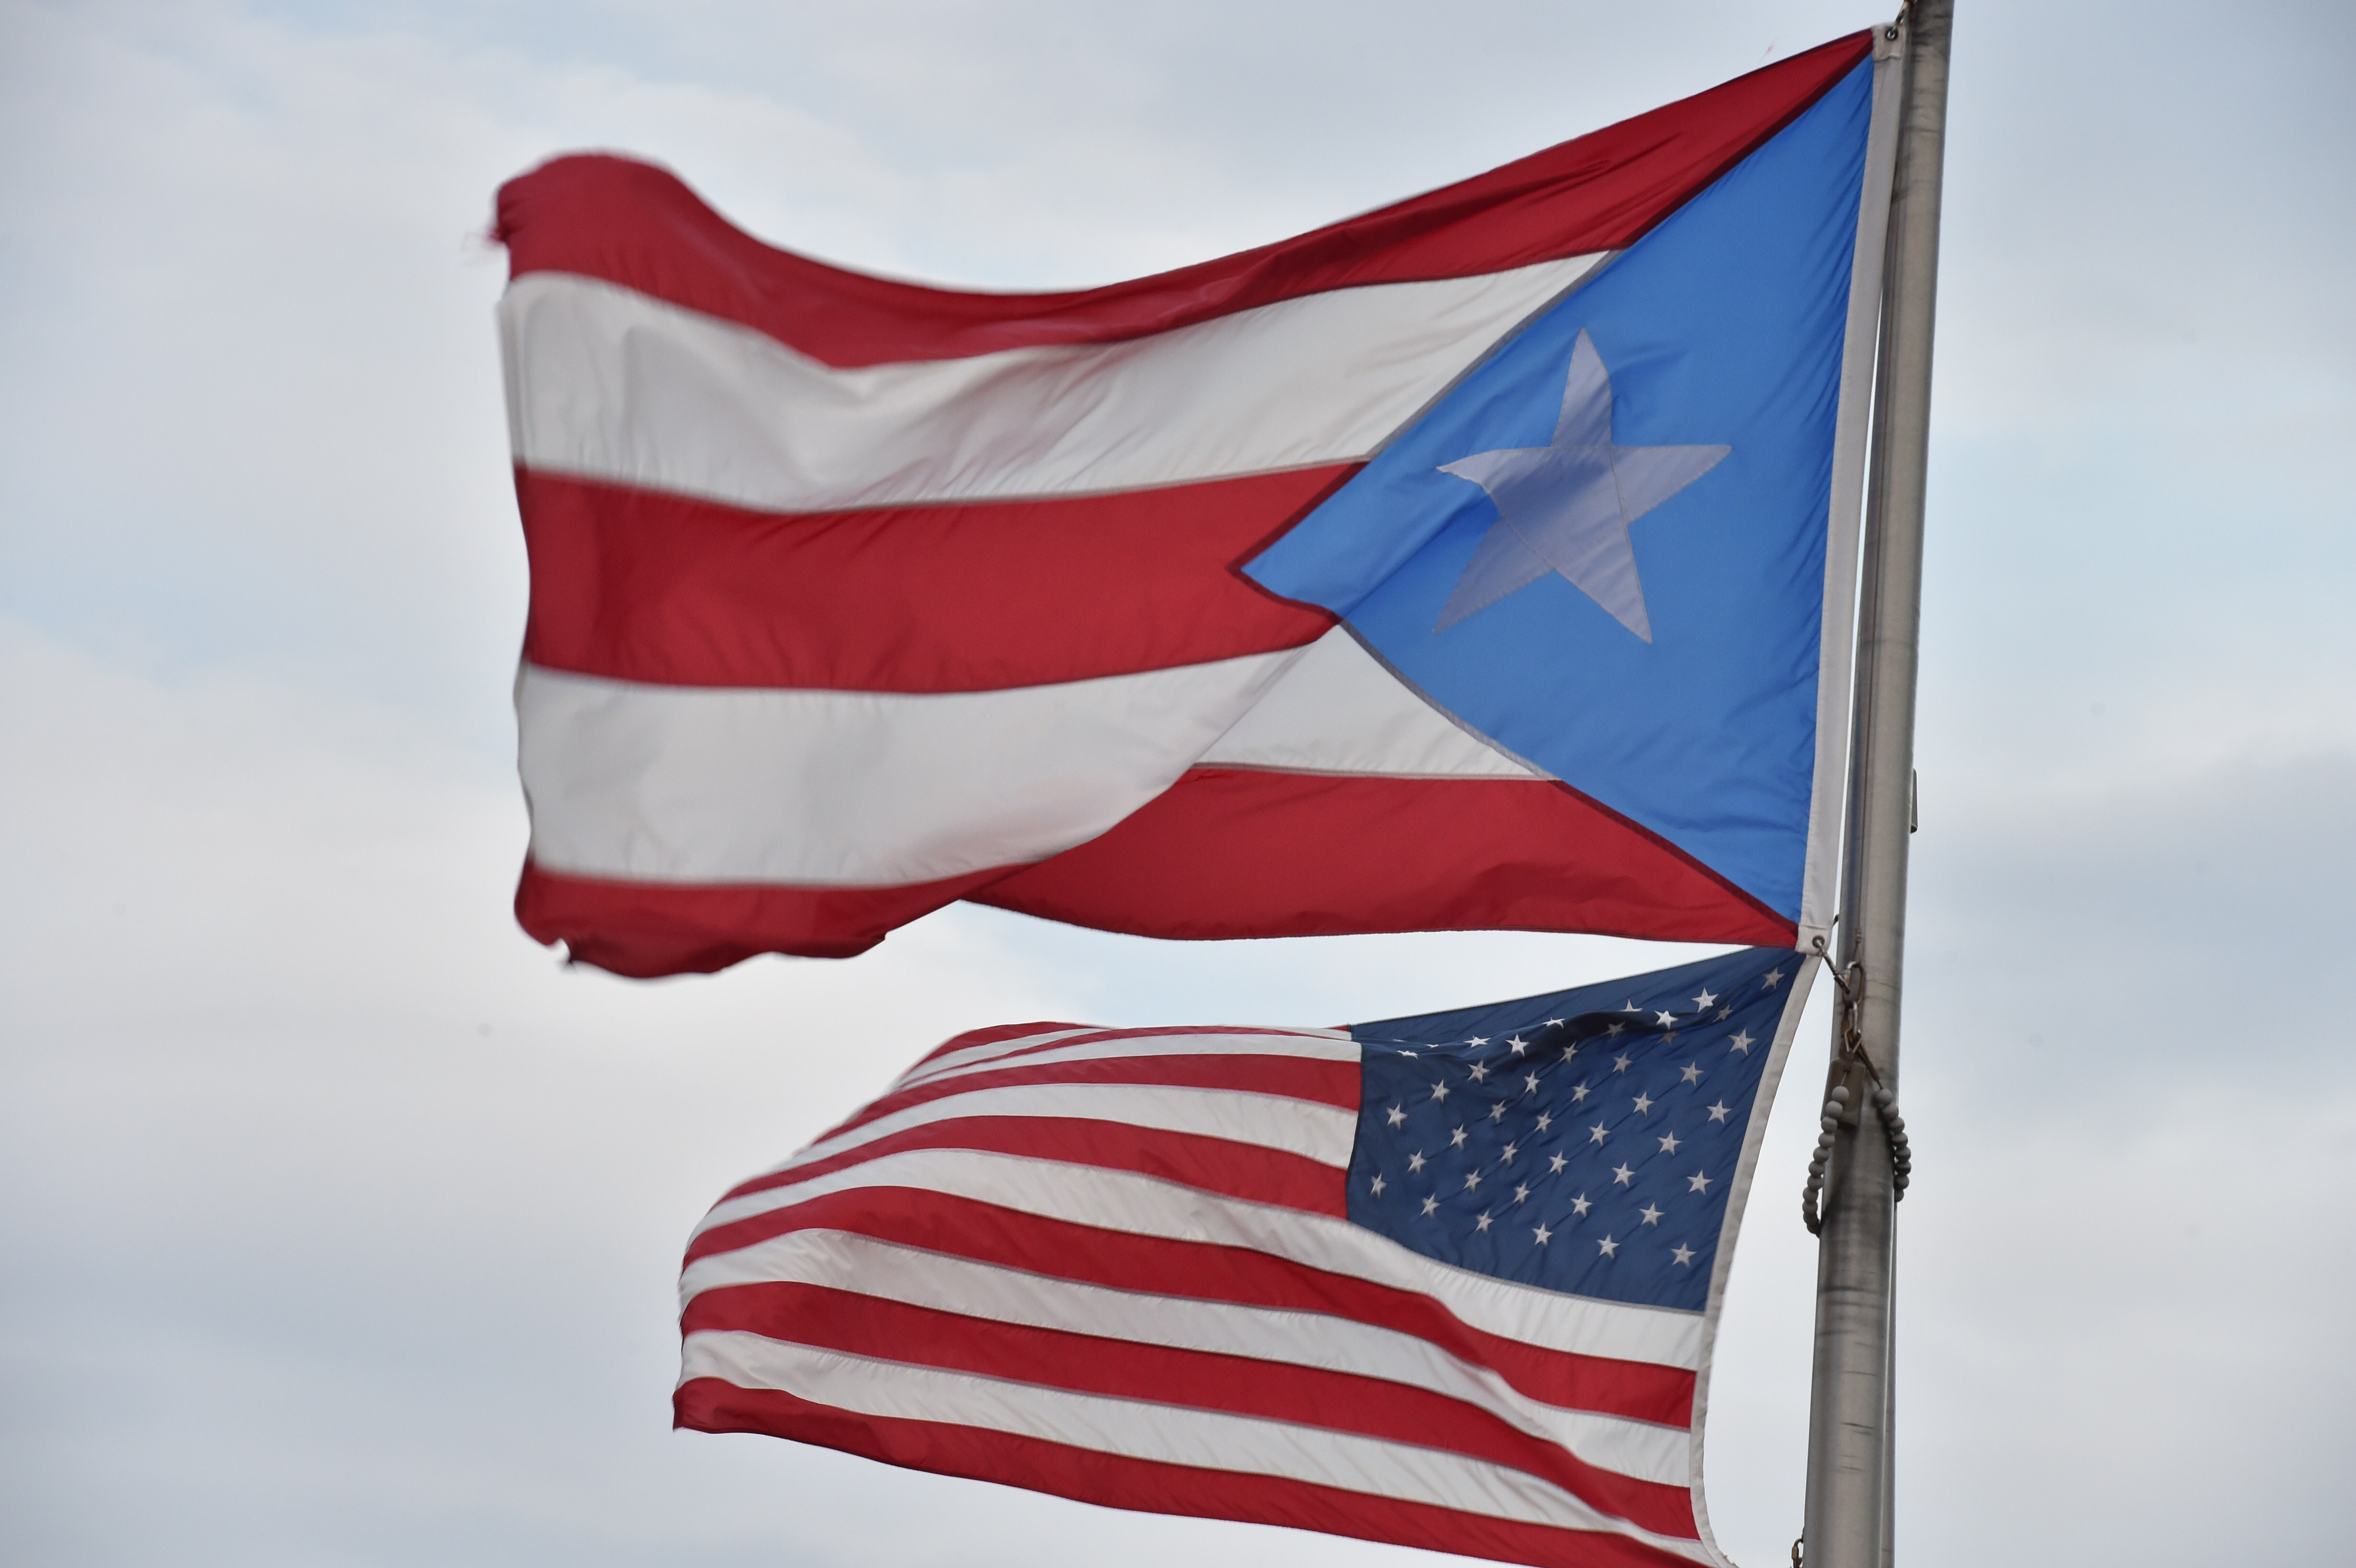 The Puerto Rican and US flags are seen in the Old Town  district  Feb. 9, 2015  in San Juan, Puerto Rico.